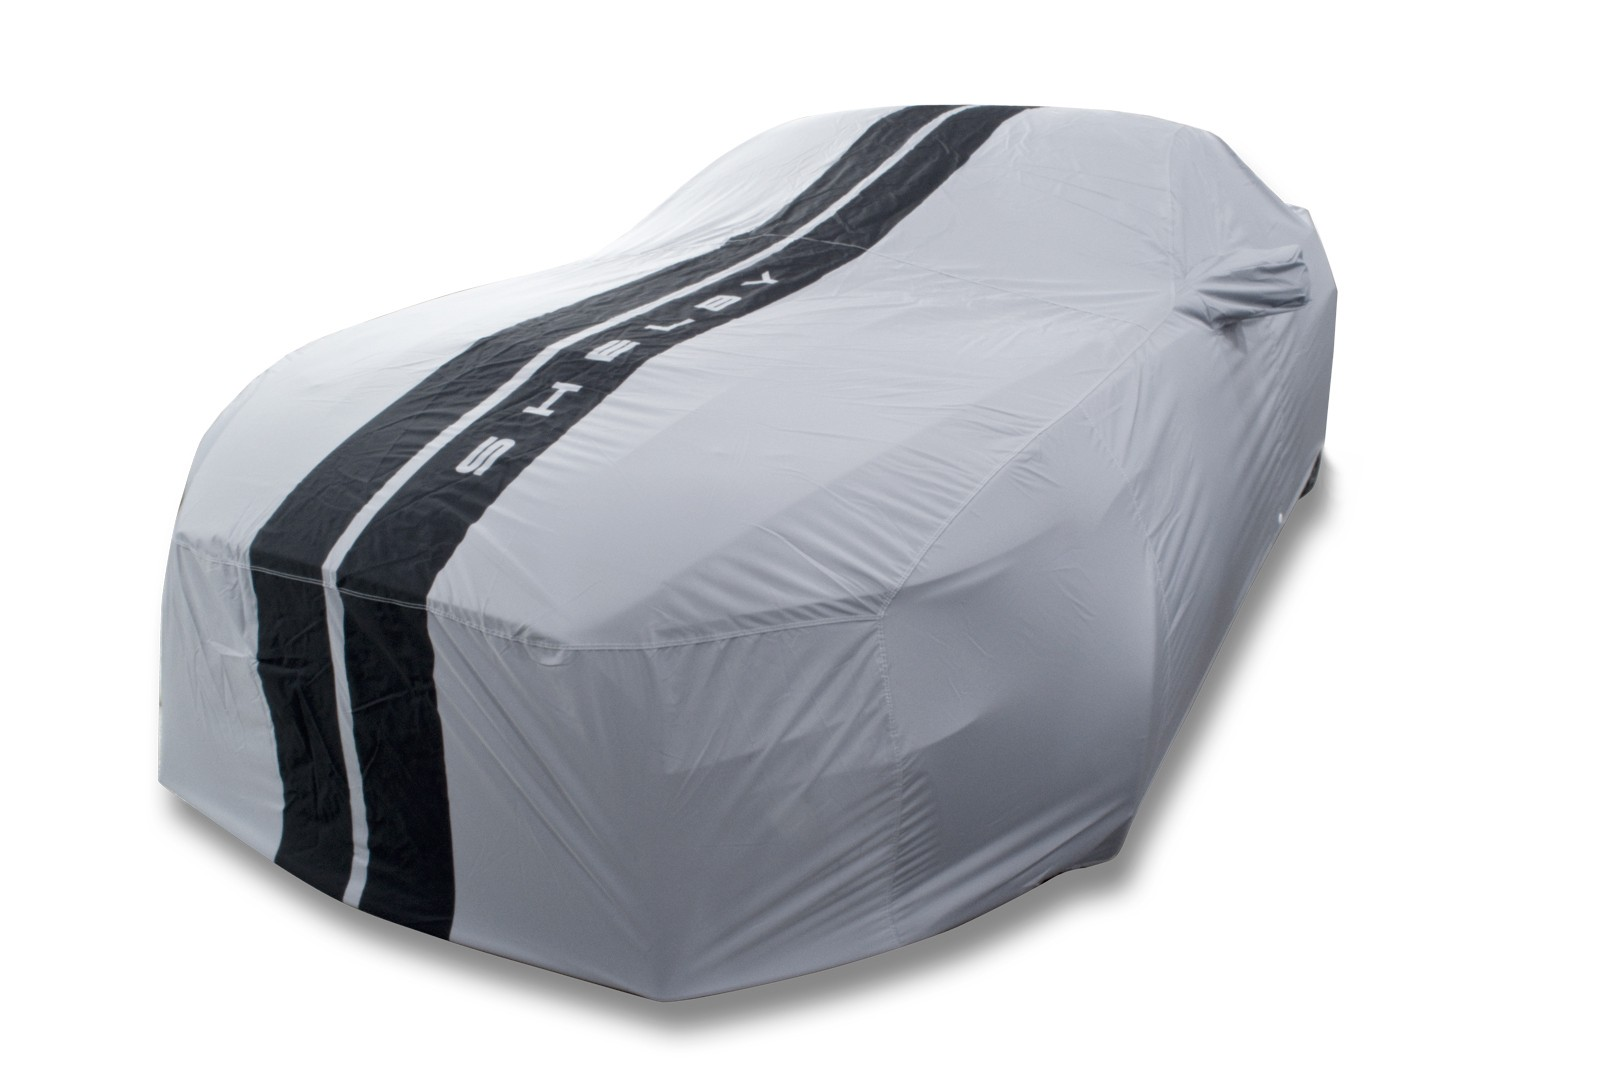 2015 2017 Mustang Shelby Gt350 Genuine Ford Weathershield